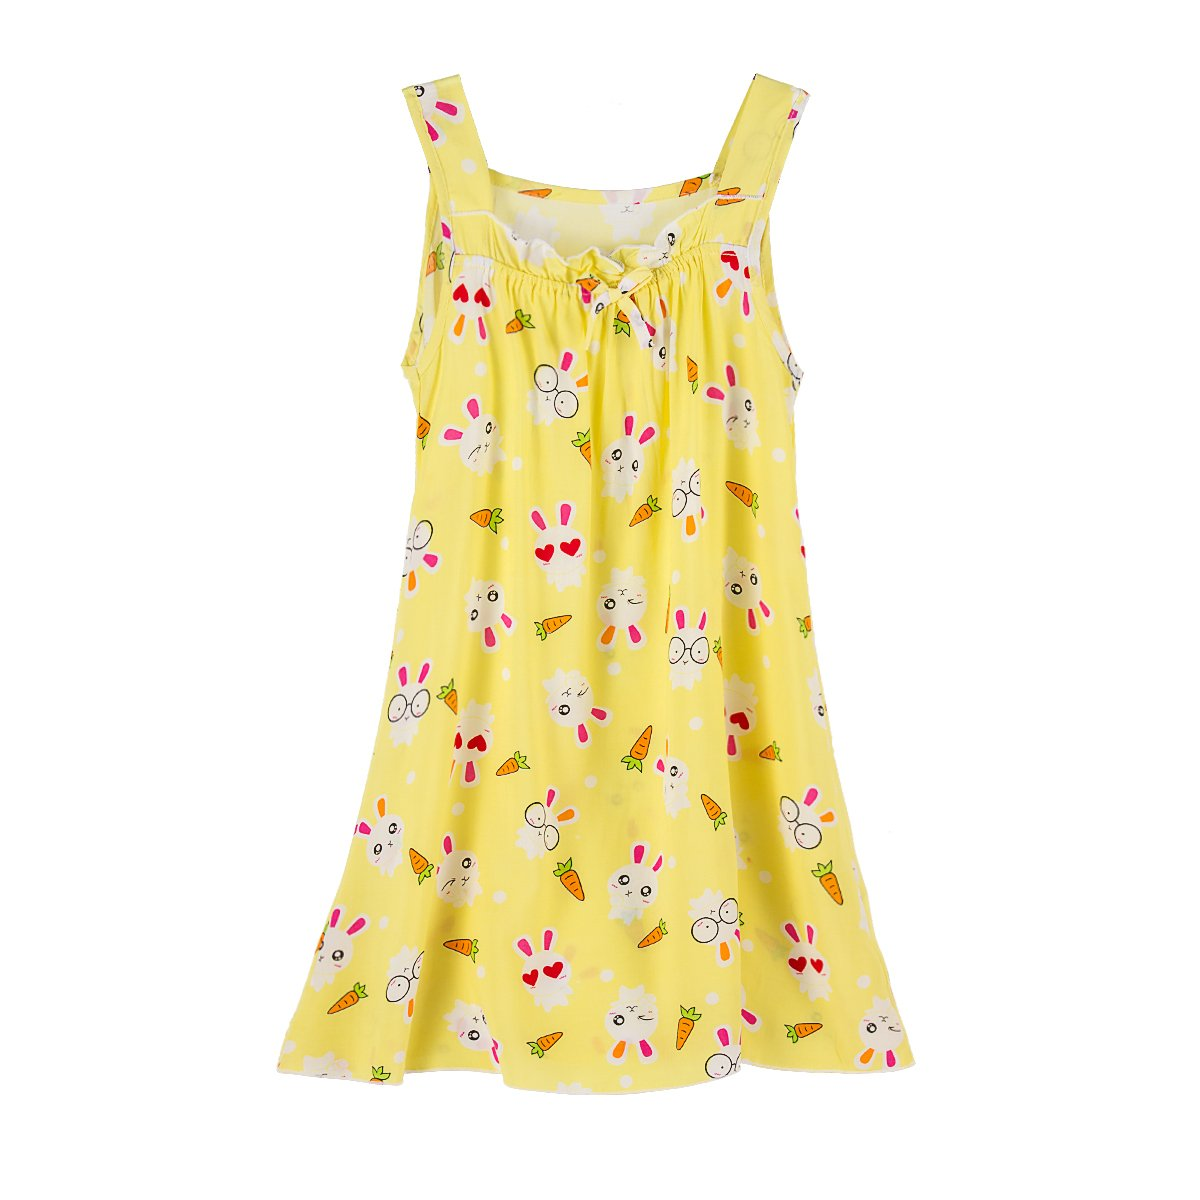 Cosweet Lovely Girl's Summer Cotton Nightgown, Kids Nightdress Sleepwear Pajamas for 3'7''-4'11'' - M